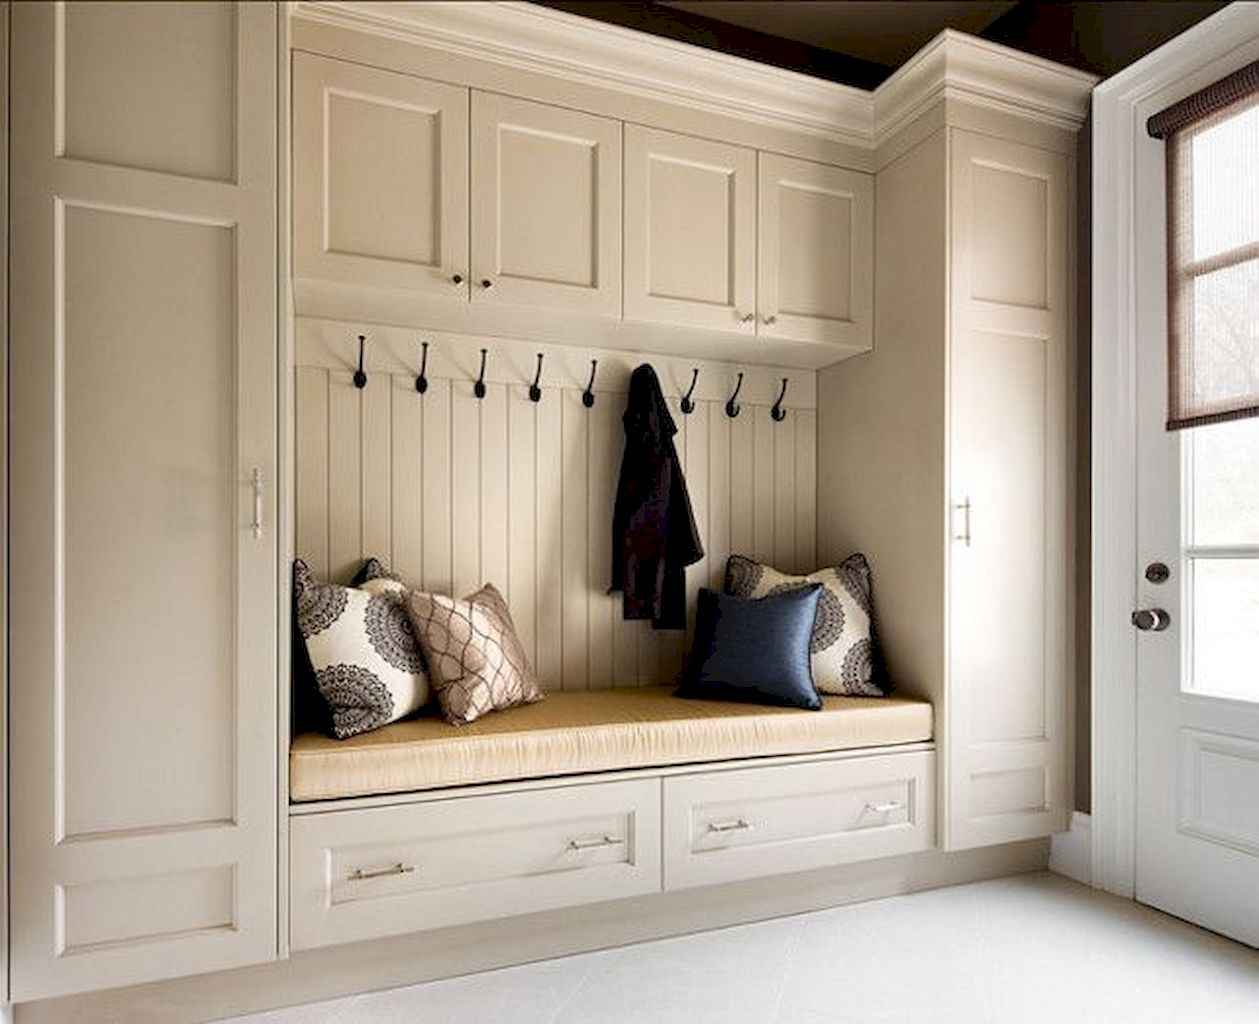 65 Cool Mudroom Design Ideas and Remodel (24)